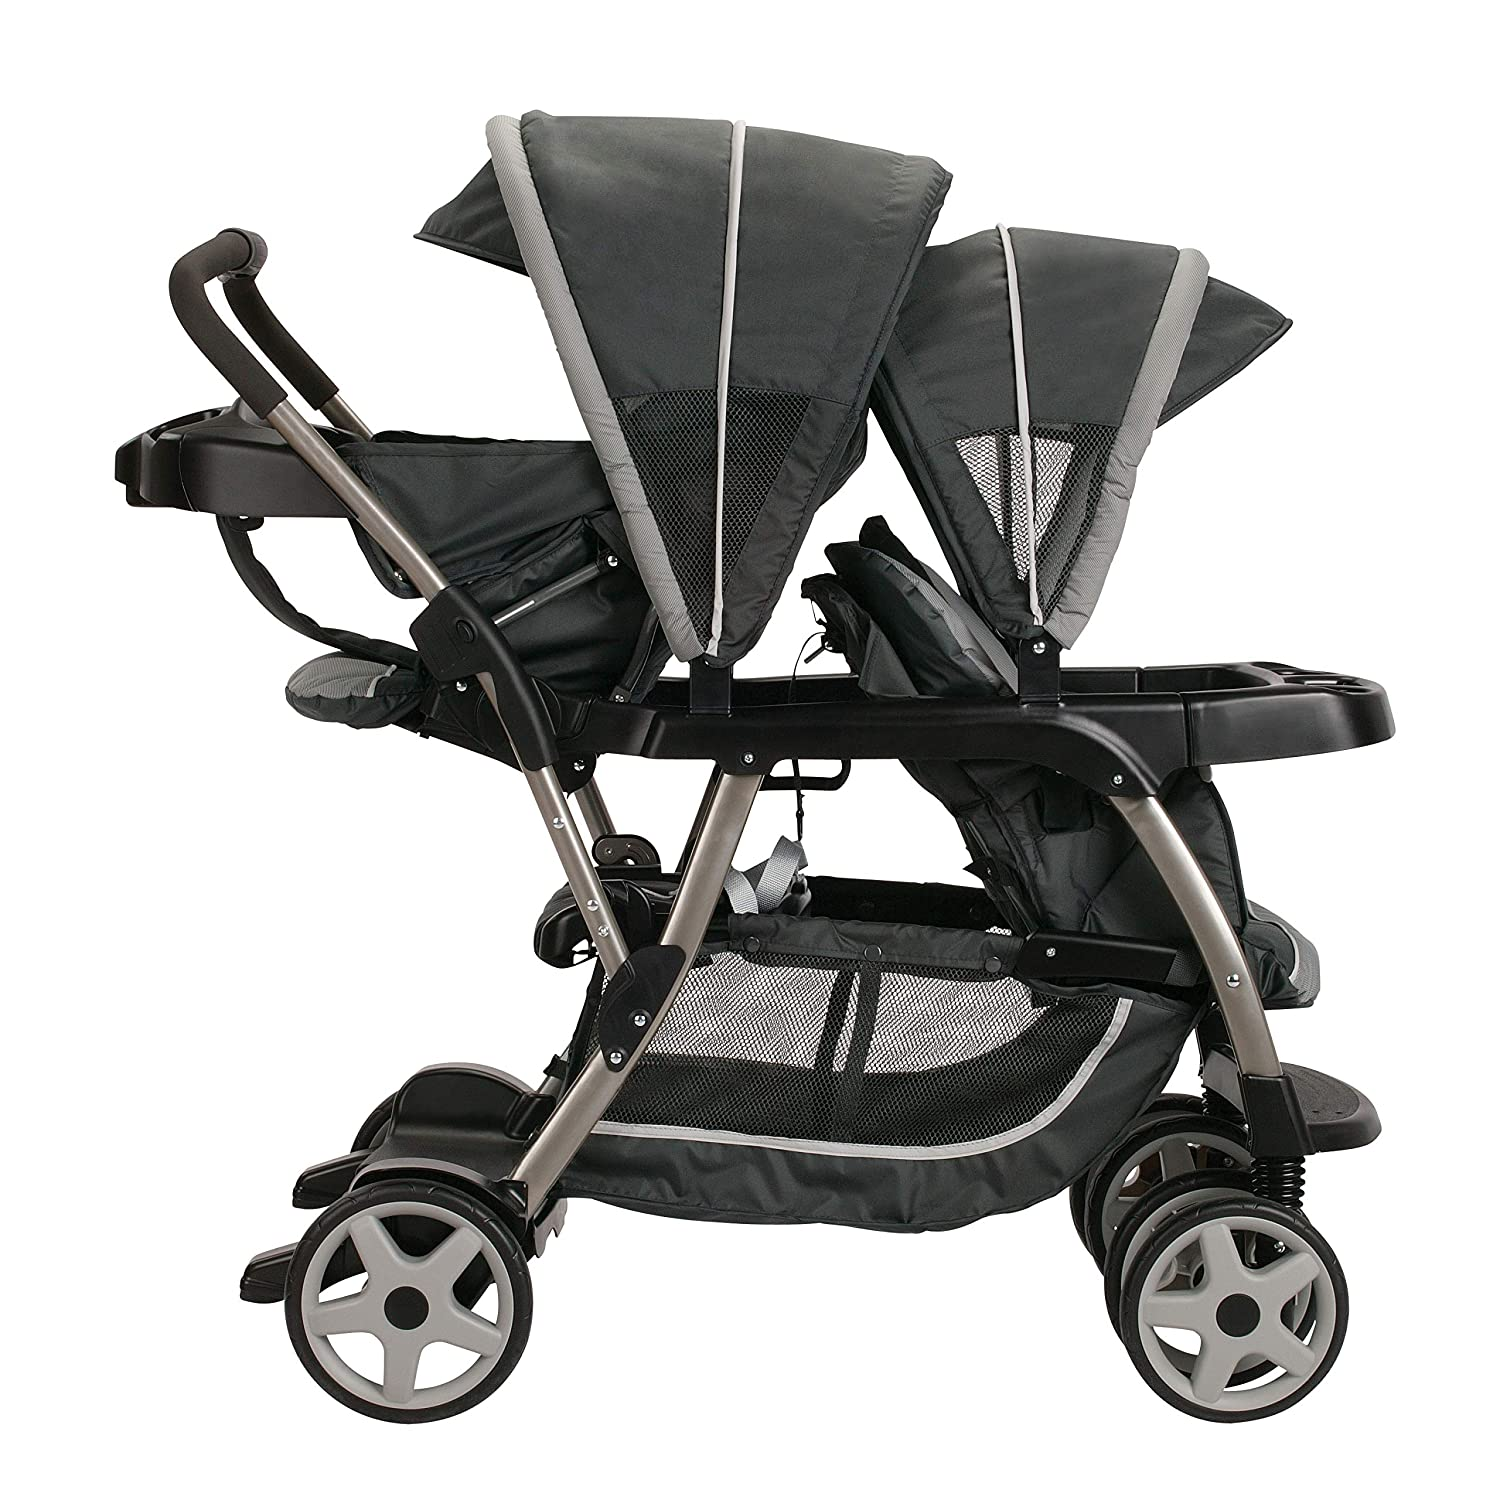 Graco Ready2grow Click Connect LX Stroller, Glacier 2015